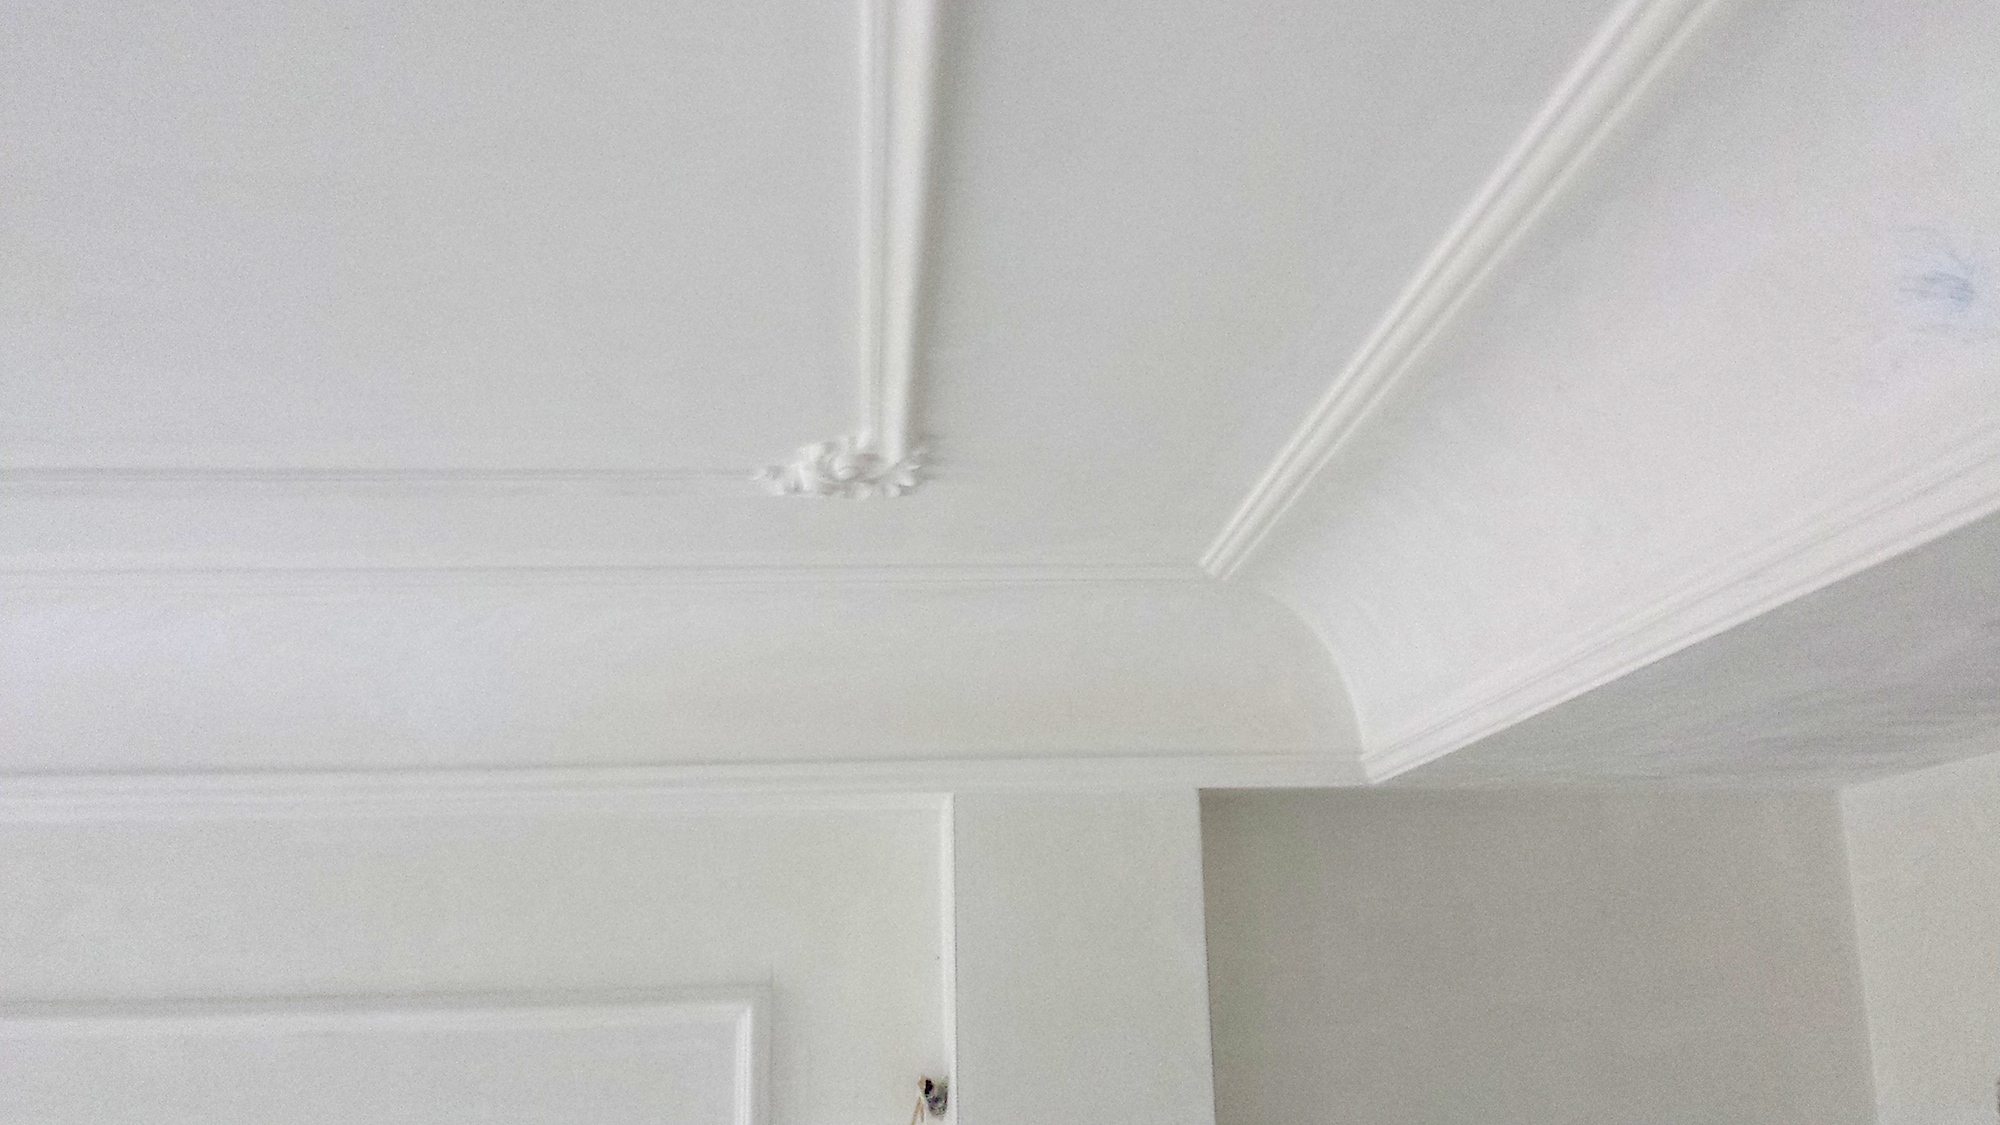 ... Riquadri A Parete Riquadri A Soffitto Pictures to pin on Pinterest